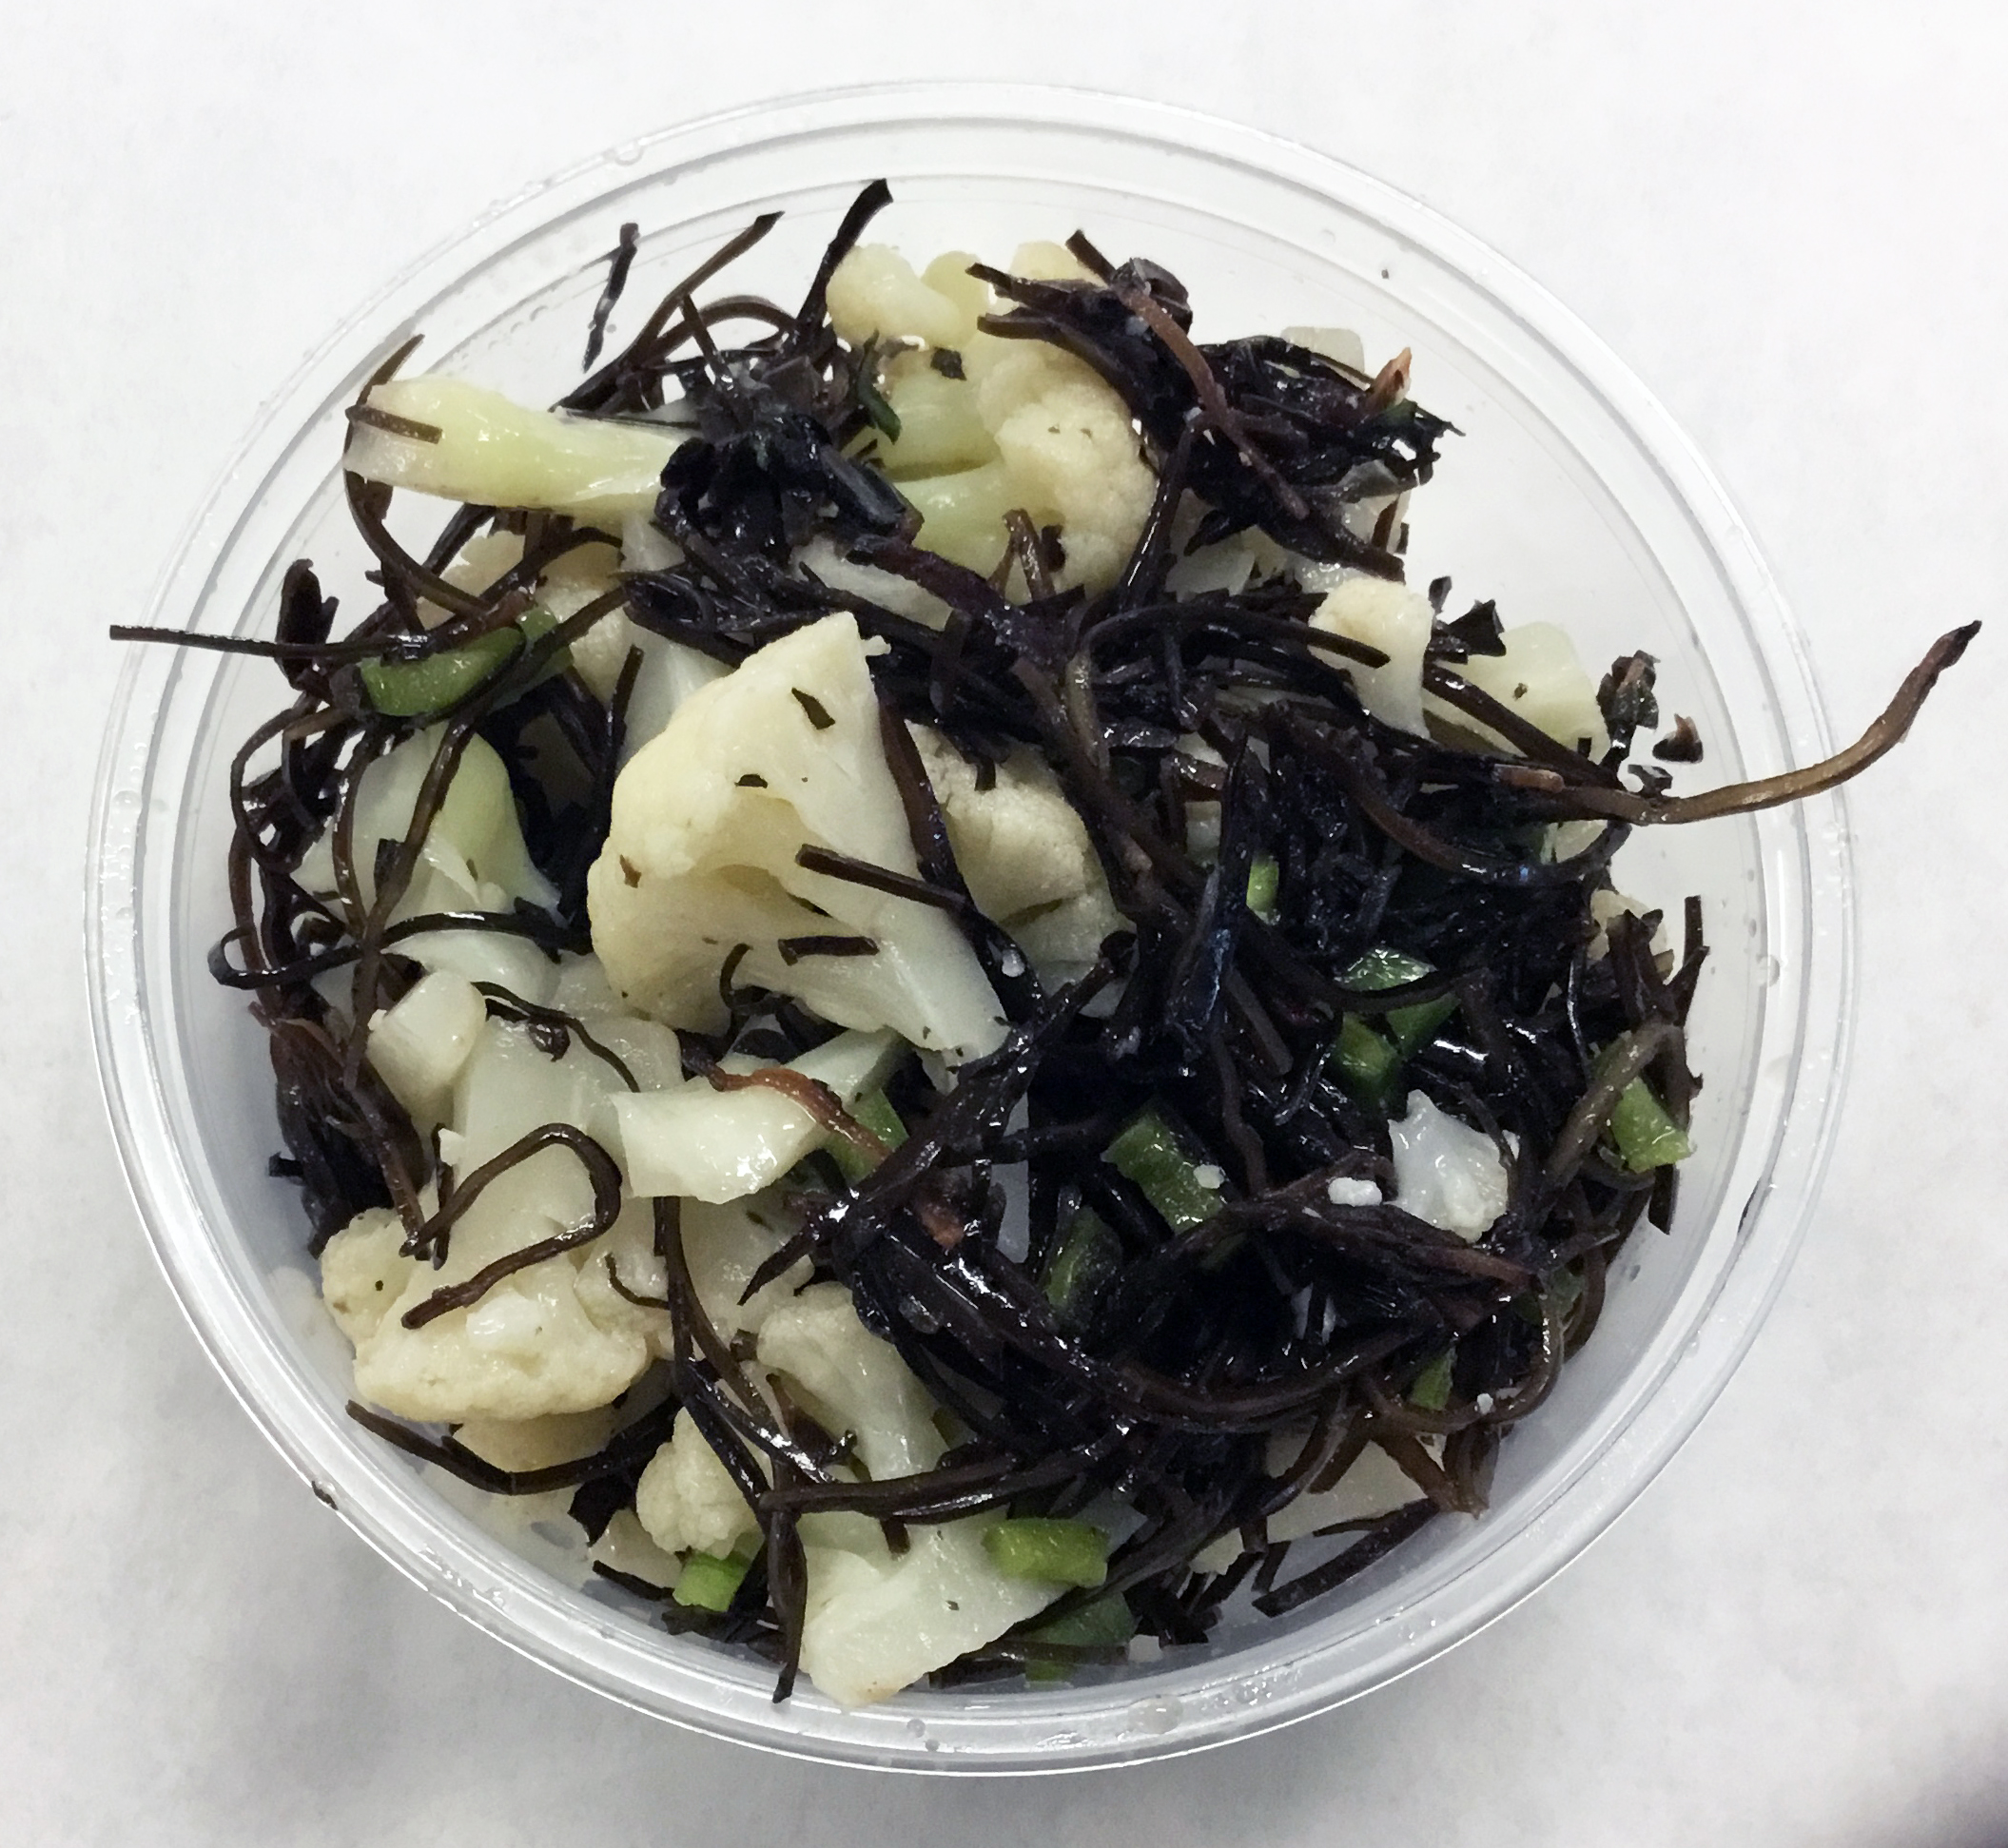 Arame (seaweed) salad with steamed cauliflower, Pablano peppers, apple cider vinegar and olive oil.